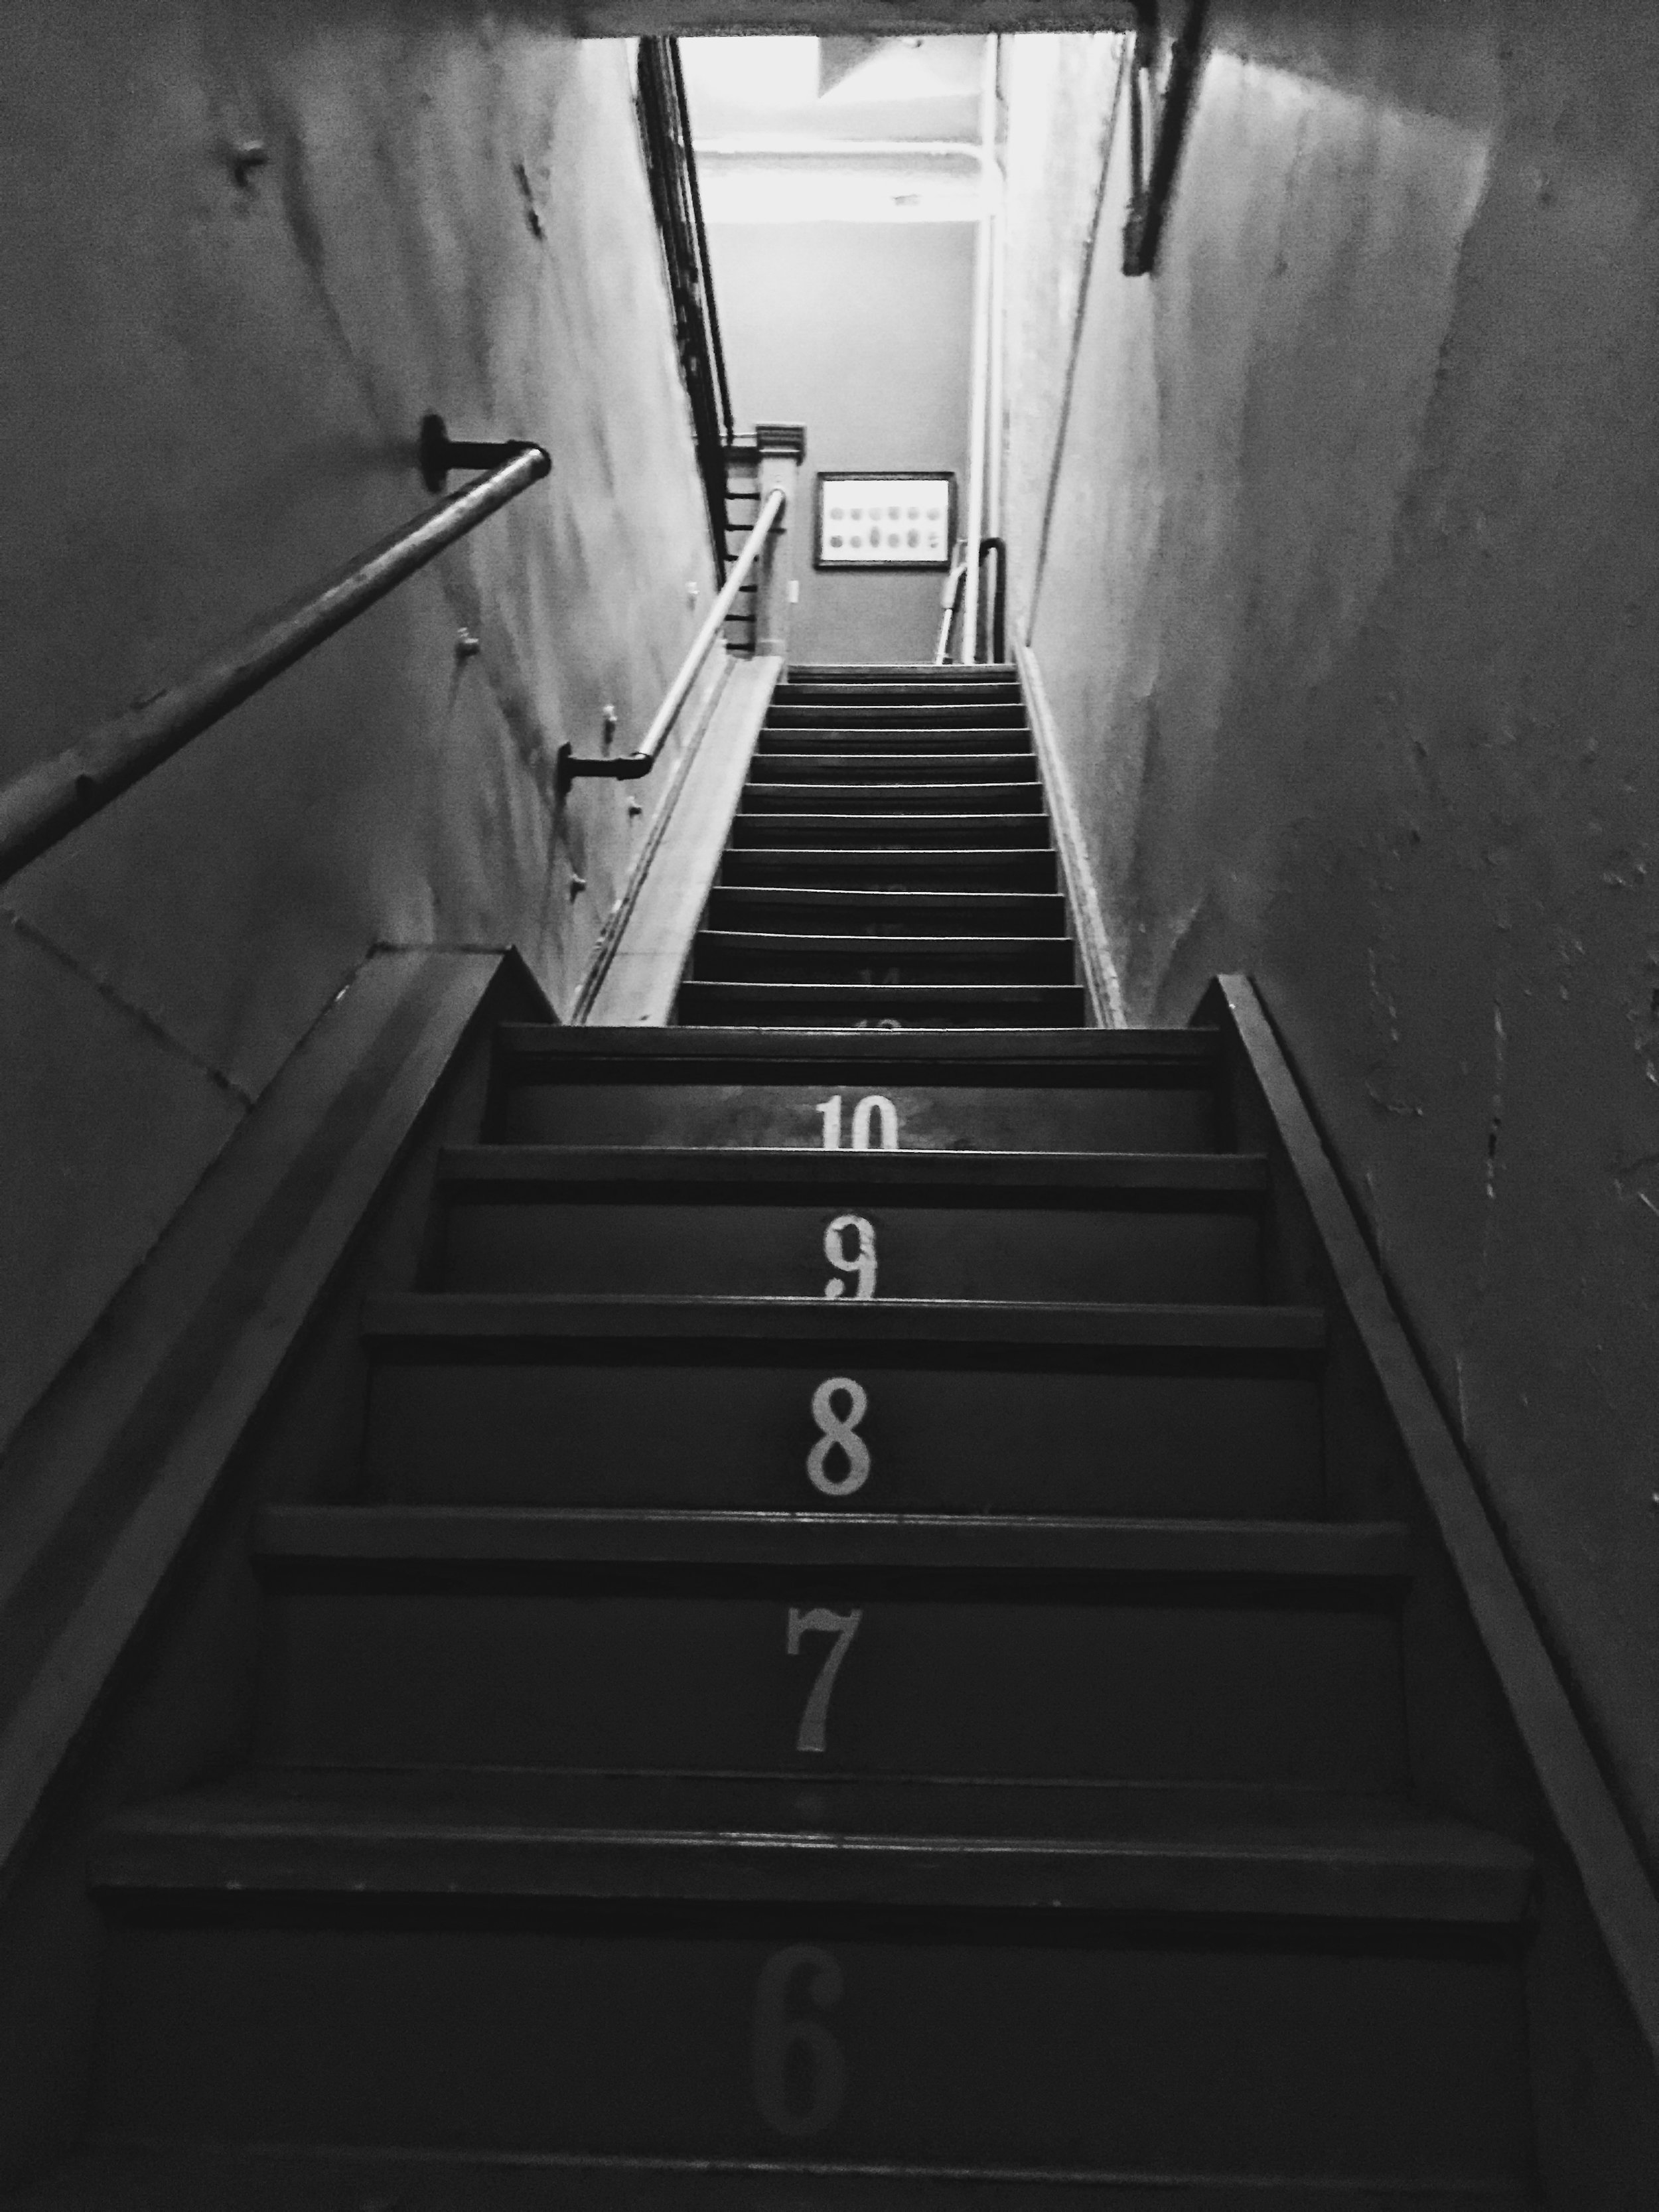 There is probably a very good reason why these steps are numbered, but I enjoy treating it like a random, mysterious thing.